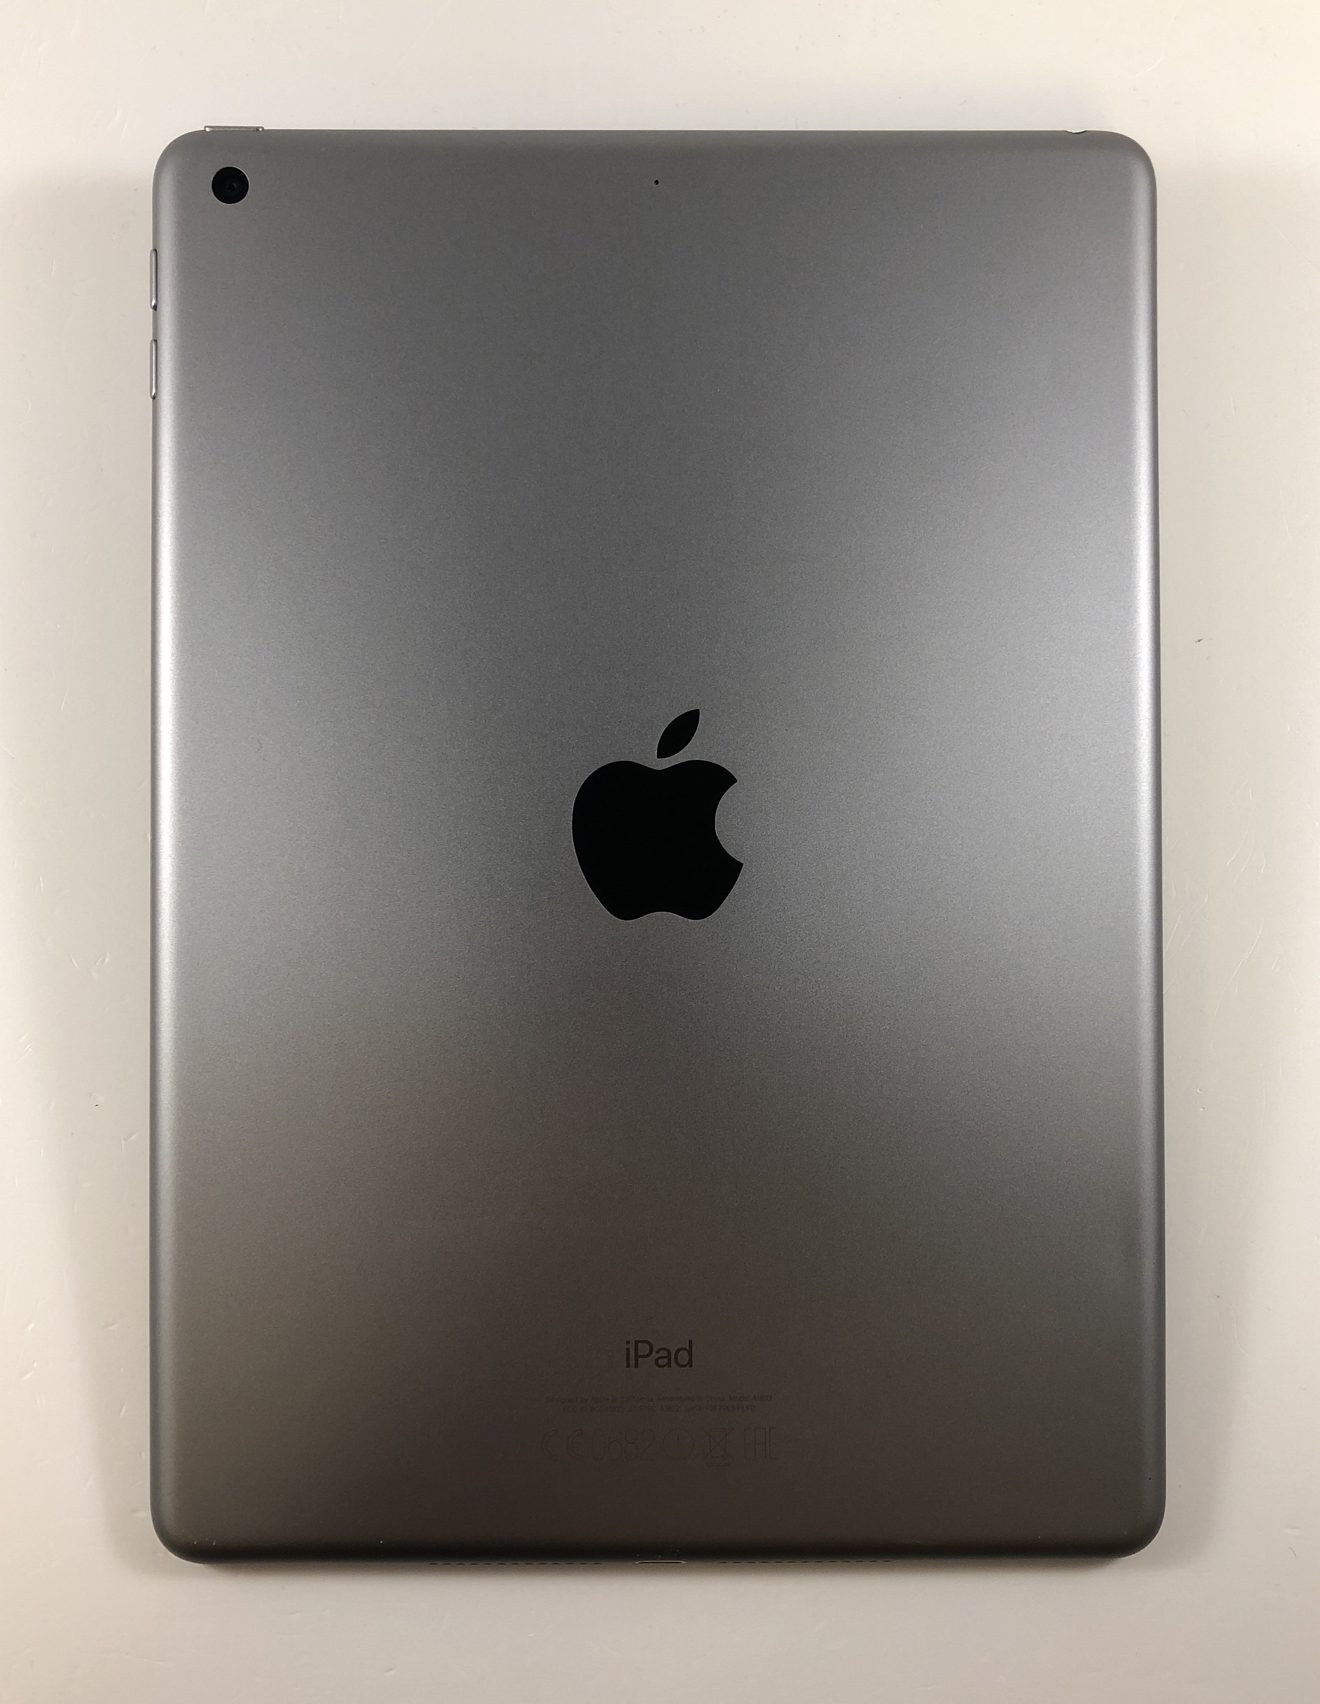 iPad 5 Wi-Fi 128GB, 128GB, Space Gray, bild 2